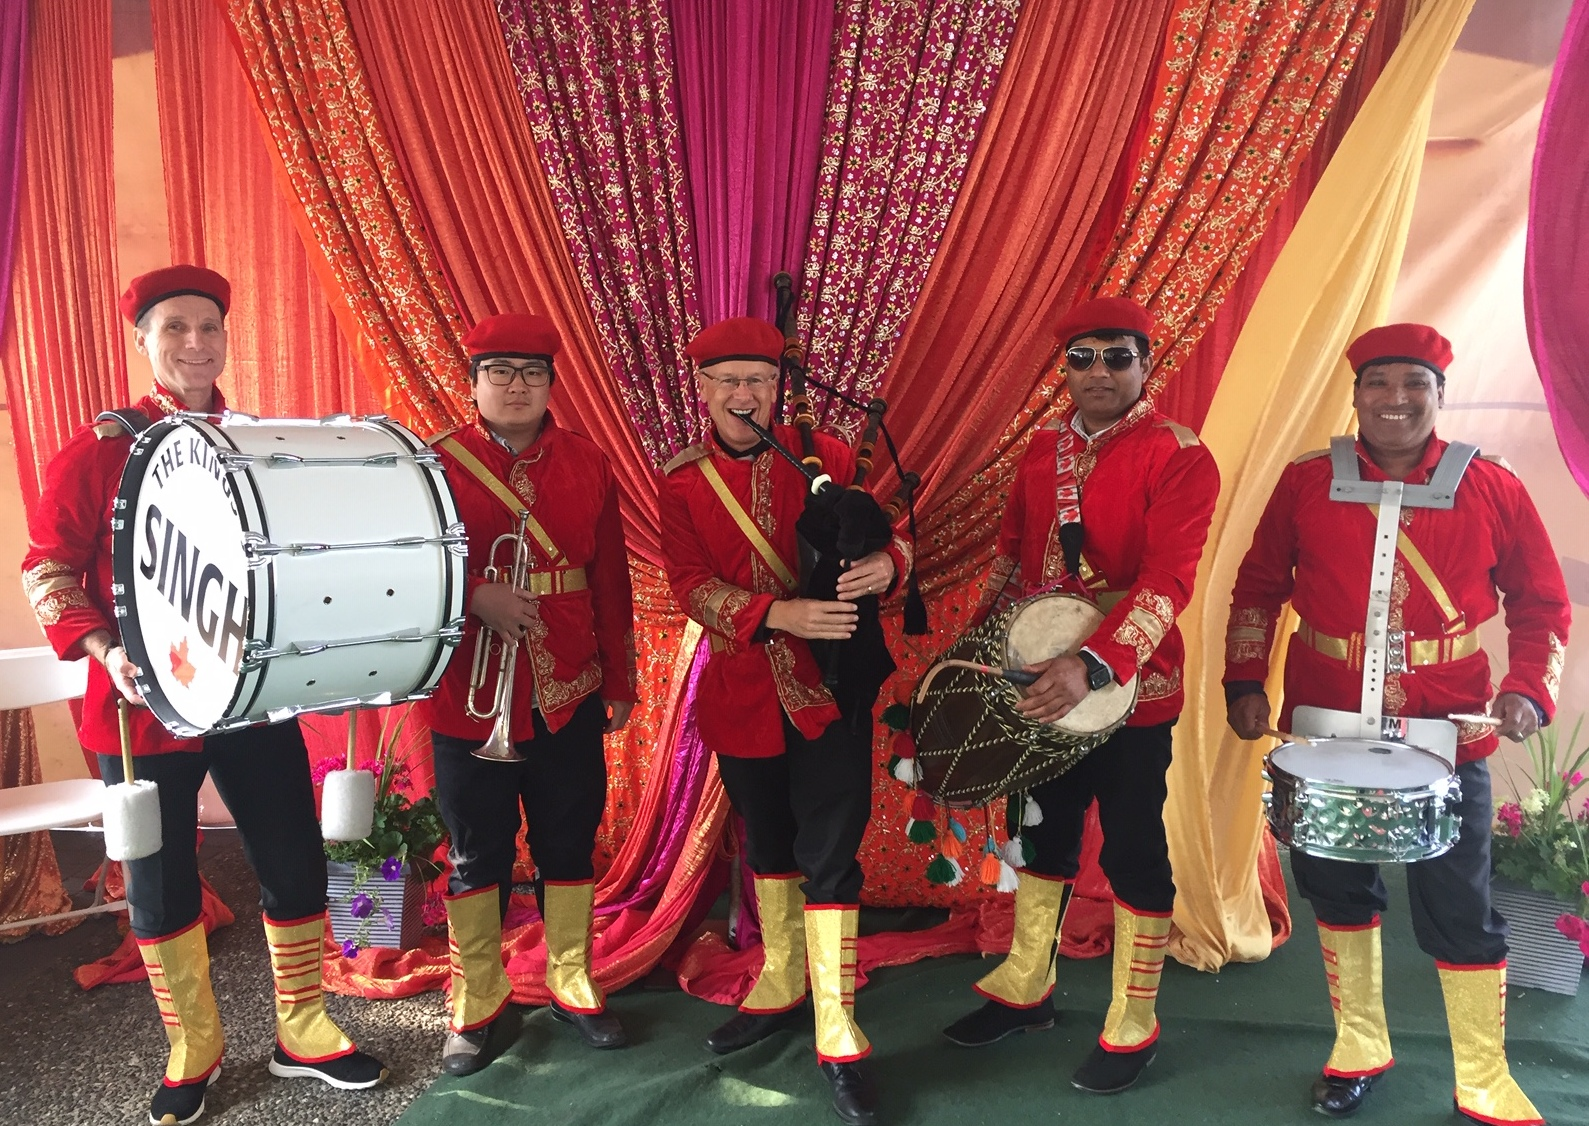 Punjabi Parade Band